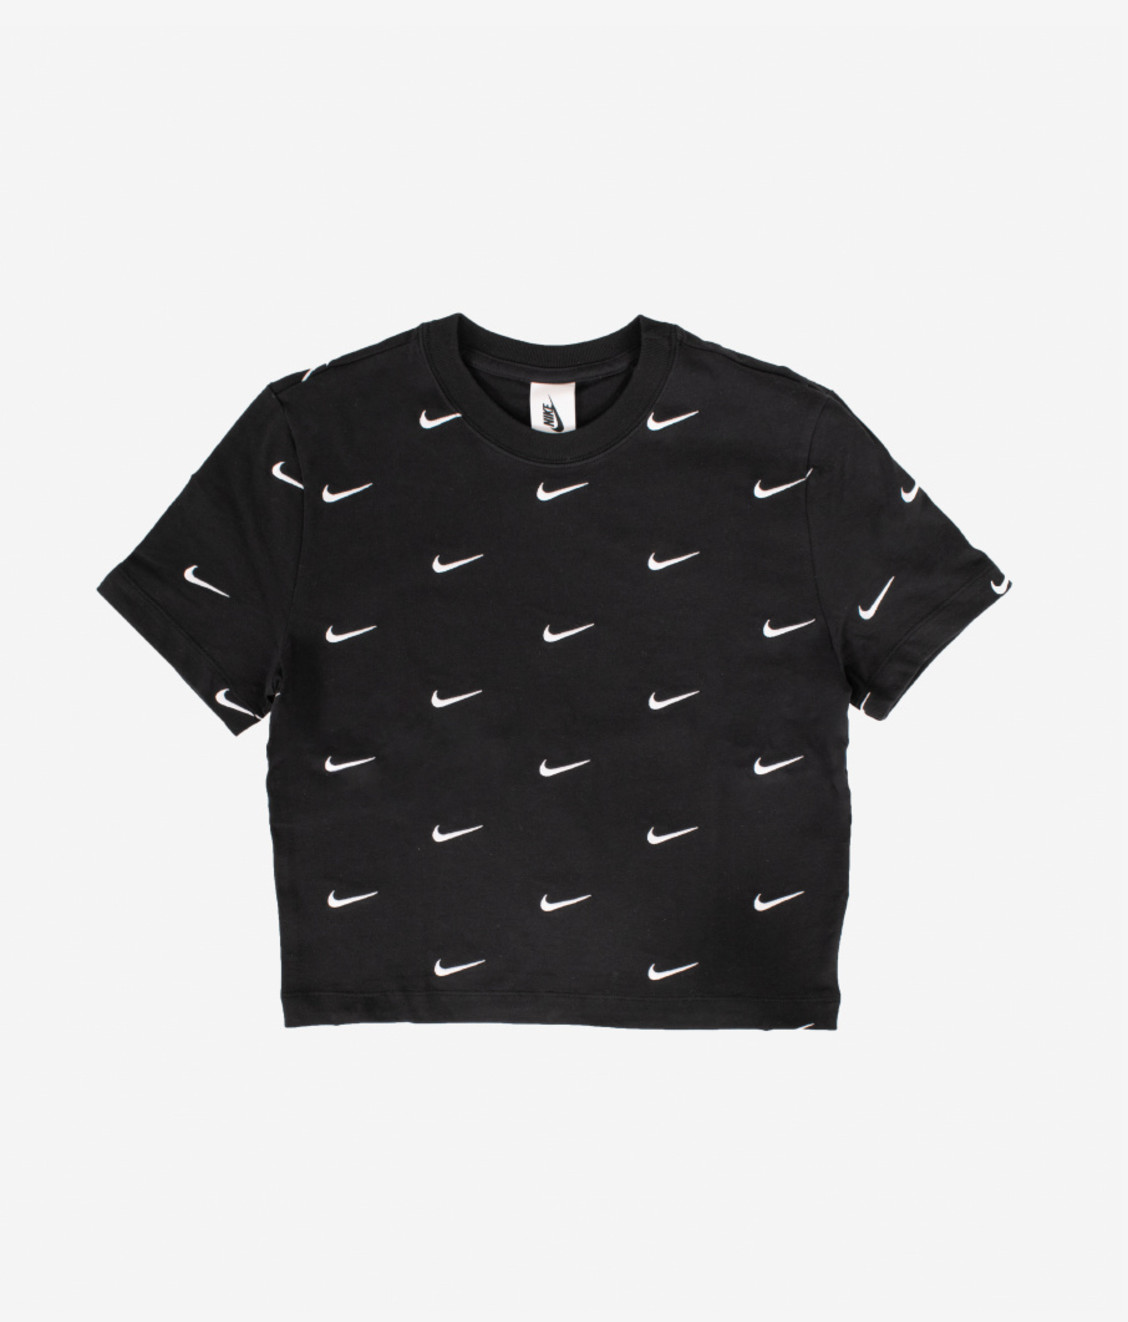 Nike Nike NRG All Over Swoosh Cropped Tee Black